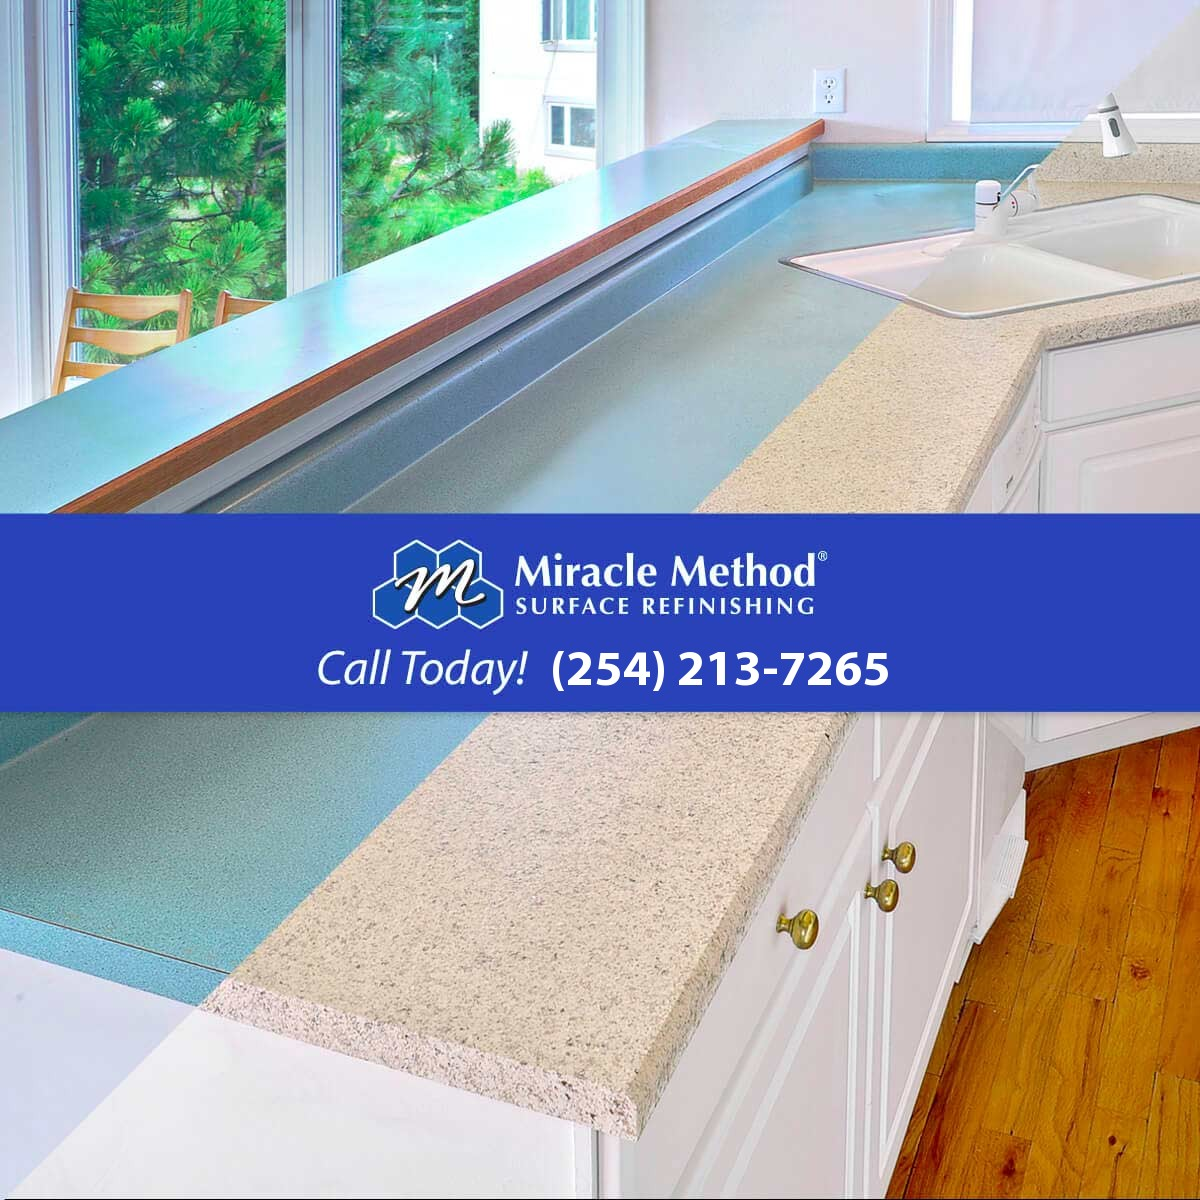 Bathtub Refinishing Reviews - Miracle Method of Waco